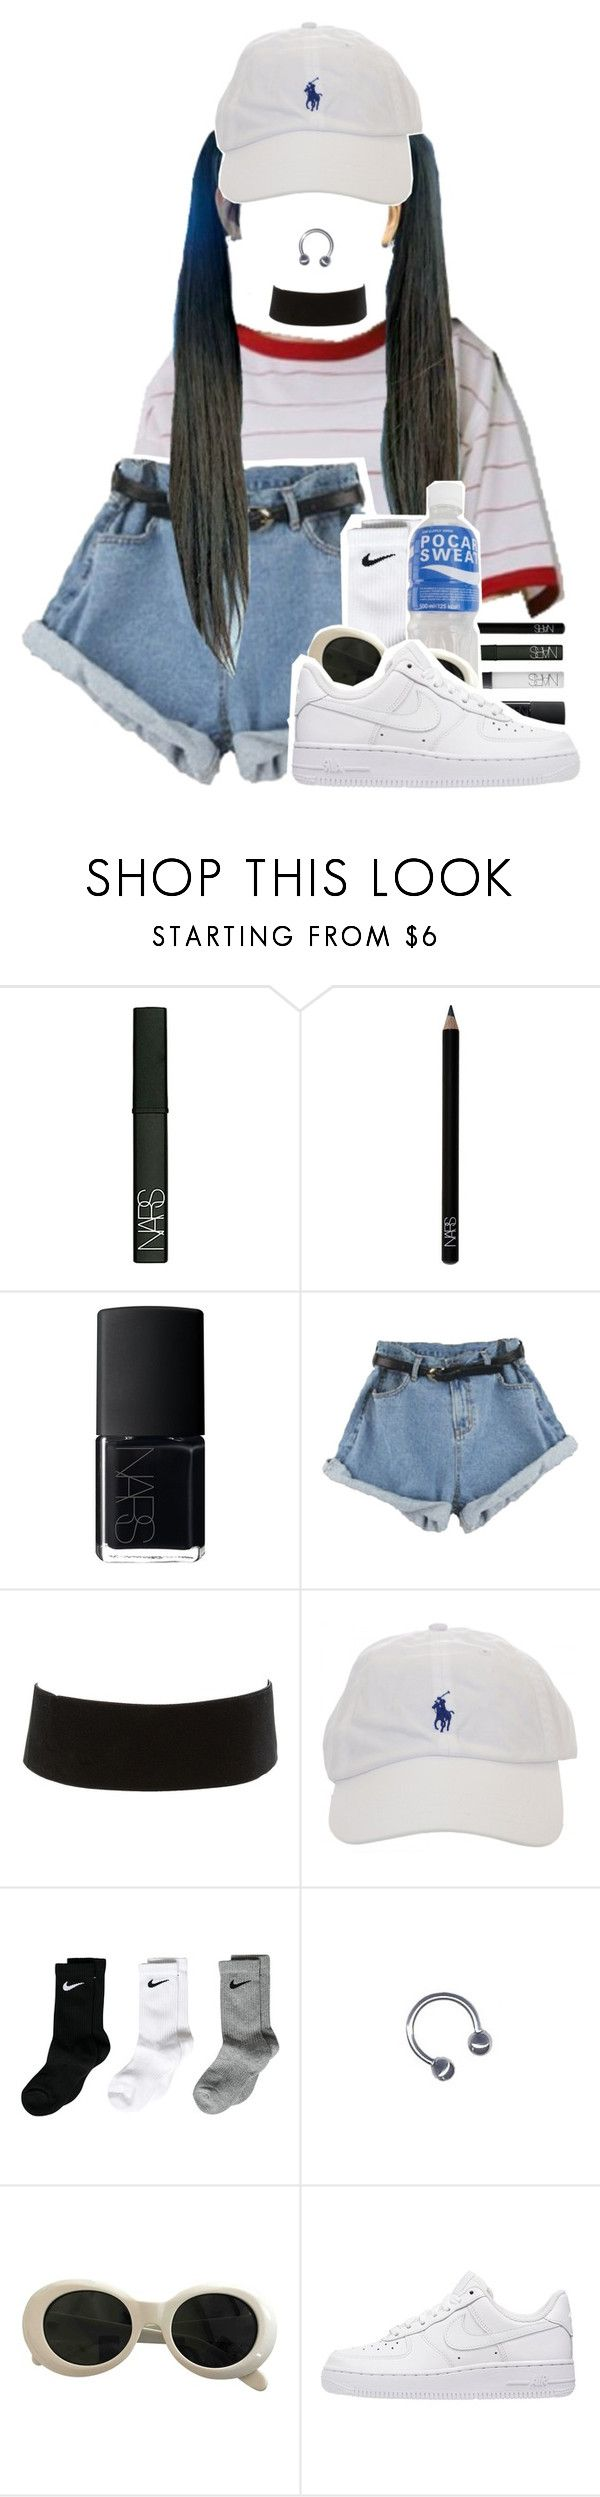 """""""M I C  D R O P"""" by gaeeko ❤ liked on Polyvore featuring NARS Cosmetics, Charlotte Russe, NIKE and Acne Studios"""